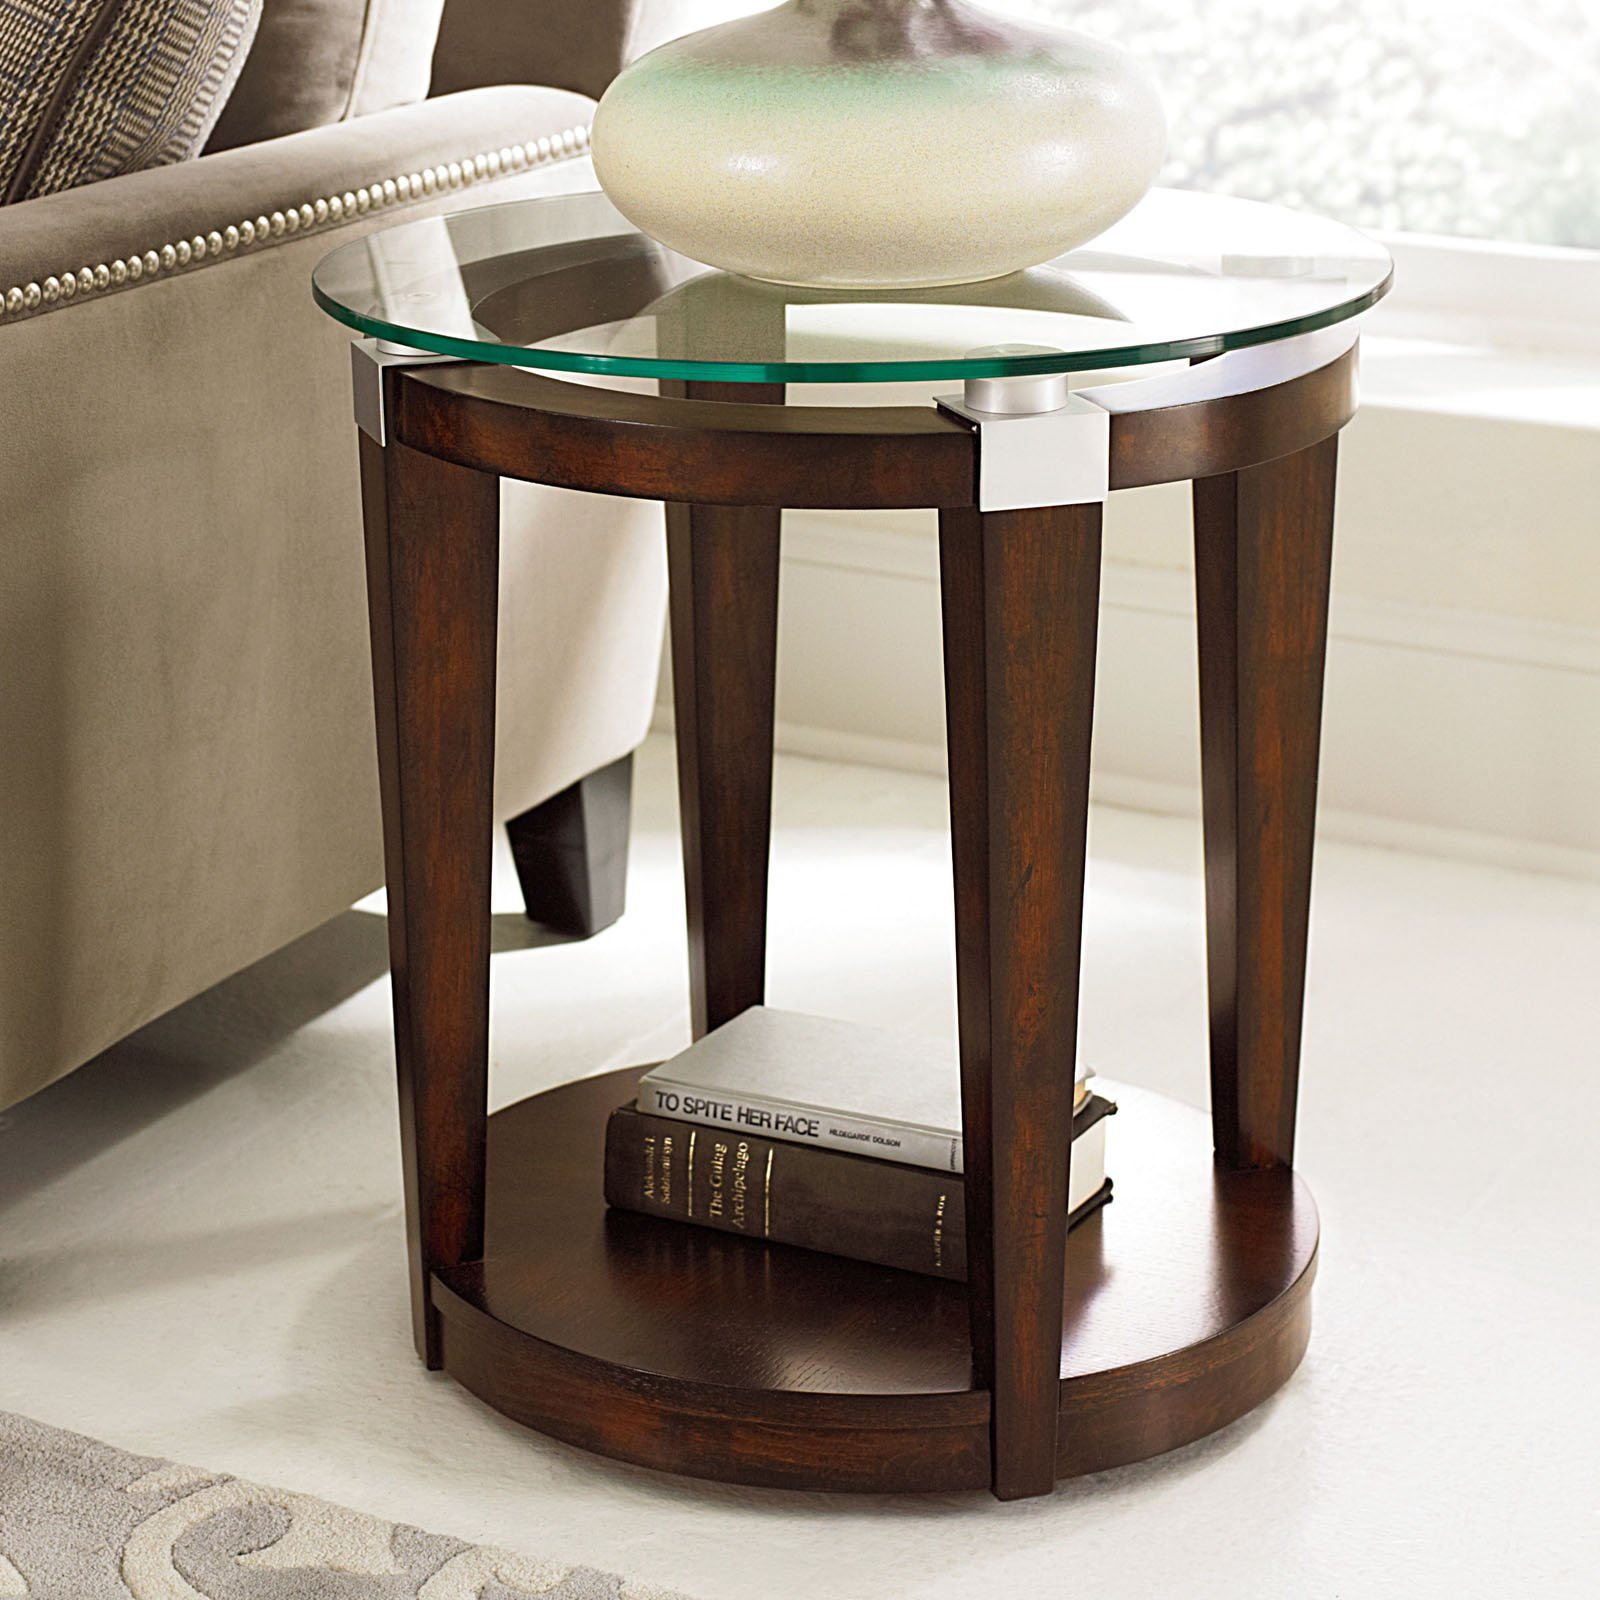 hammary solitaire round accent table rich dark brown master small end tables corner side ikea solid wood acacia dining woodworking plane big lots outdoor board game large modern